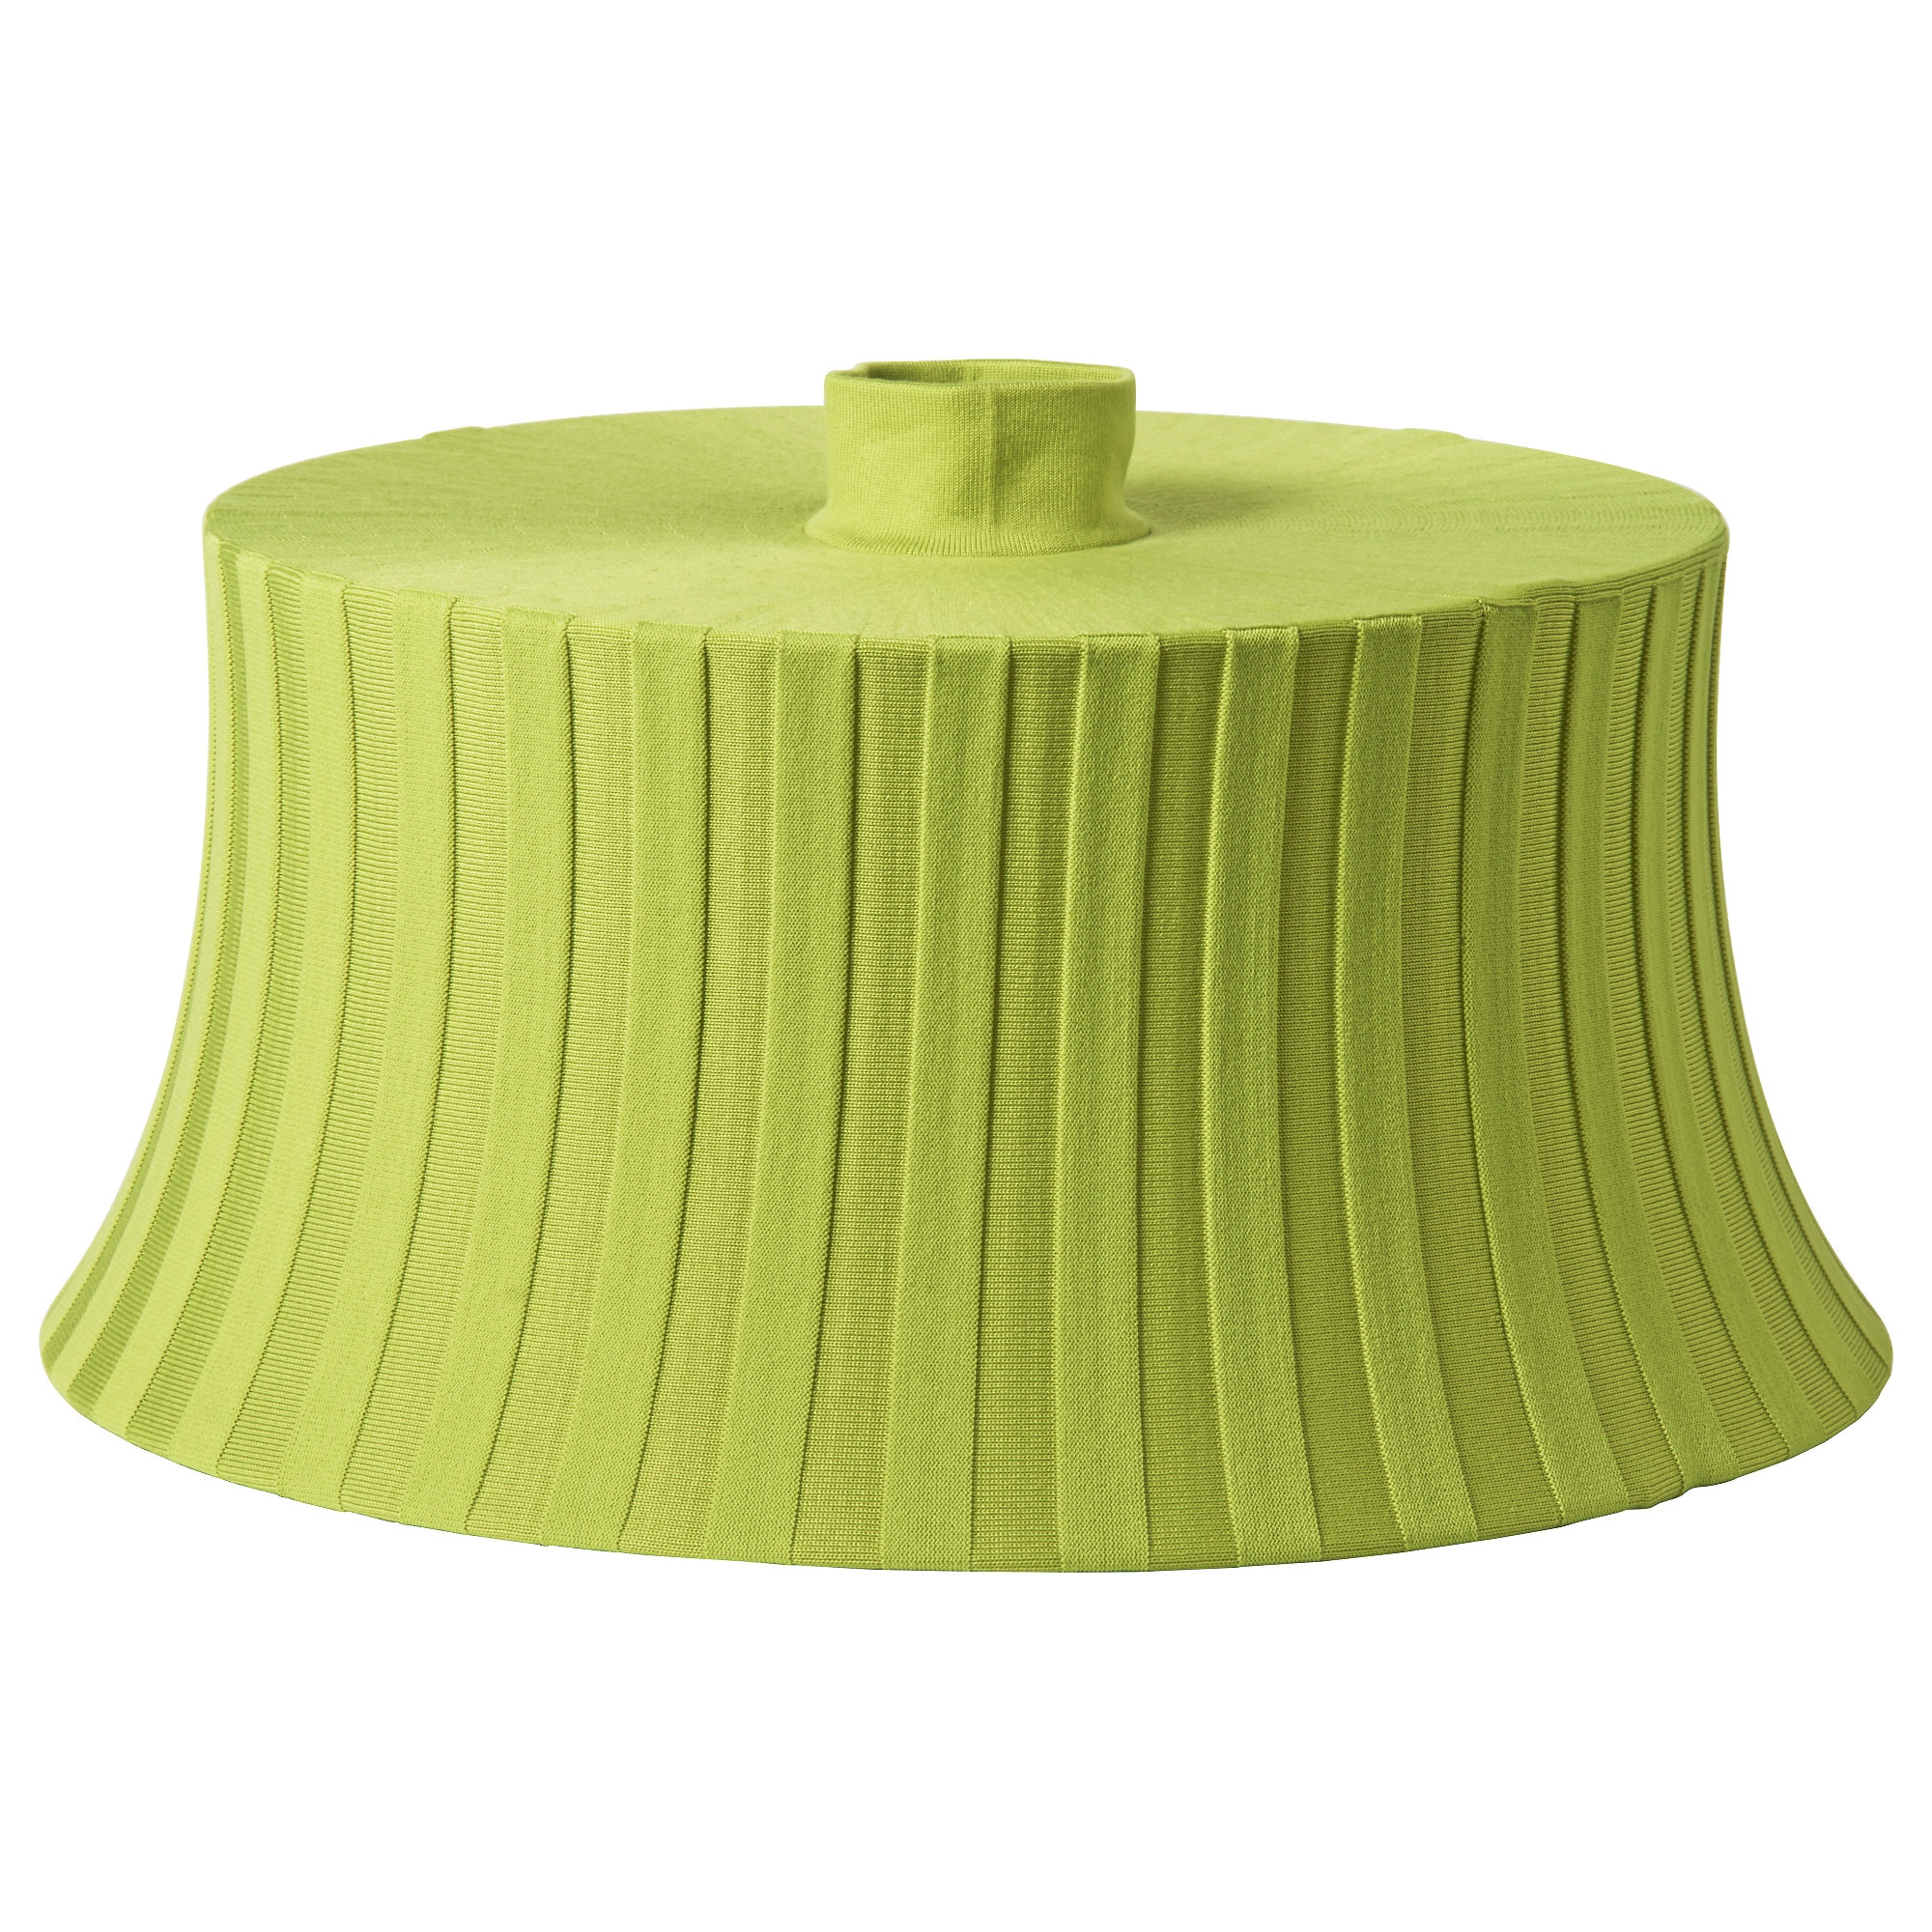 ÄMTEVIK Lamp shade - IKEA for Lamp Shade Clip Art  181plt